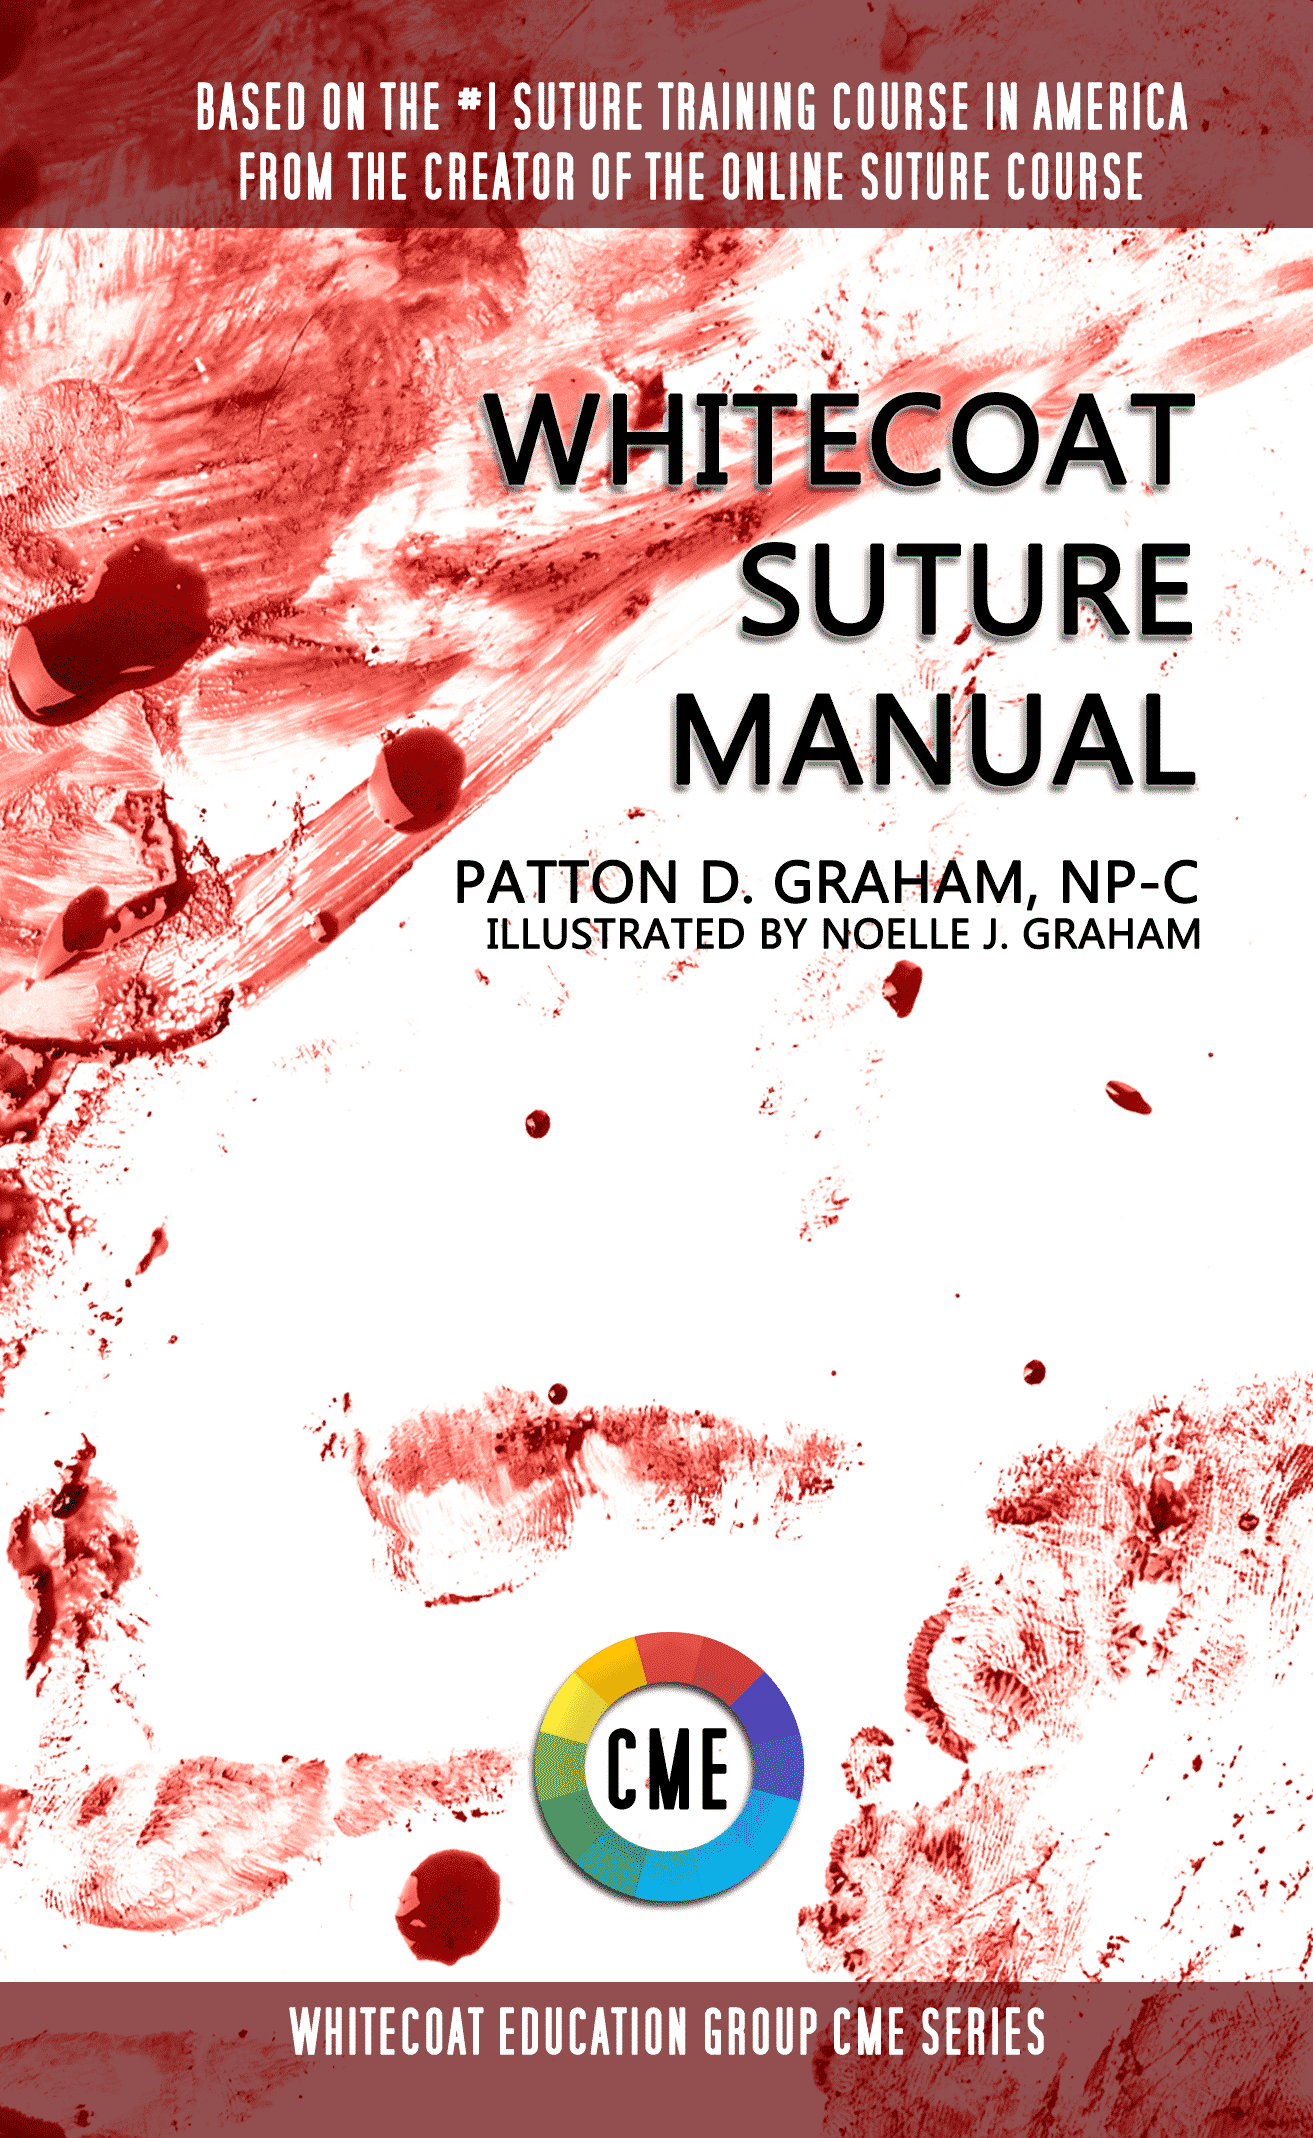 WhiteCoat Suture Manual